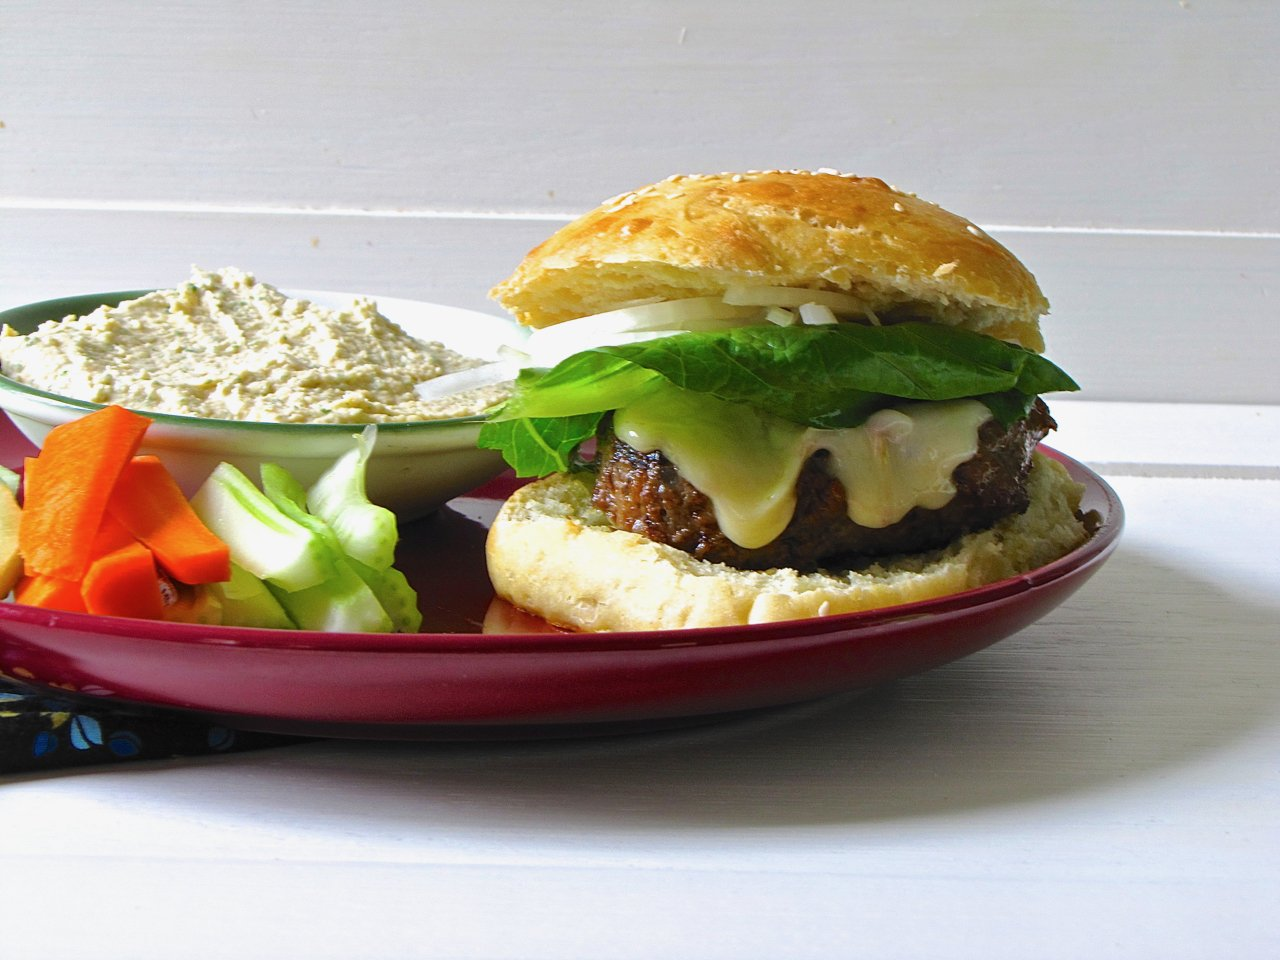 Spice Stuffed Hamburgers